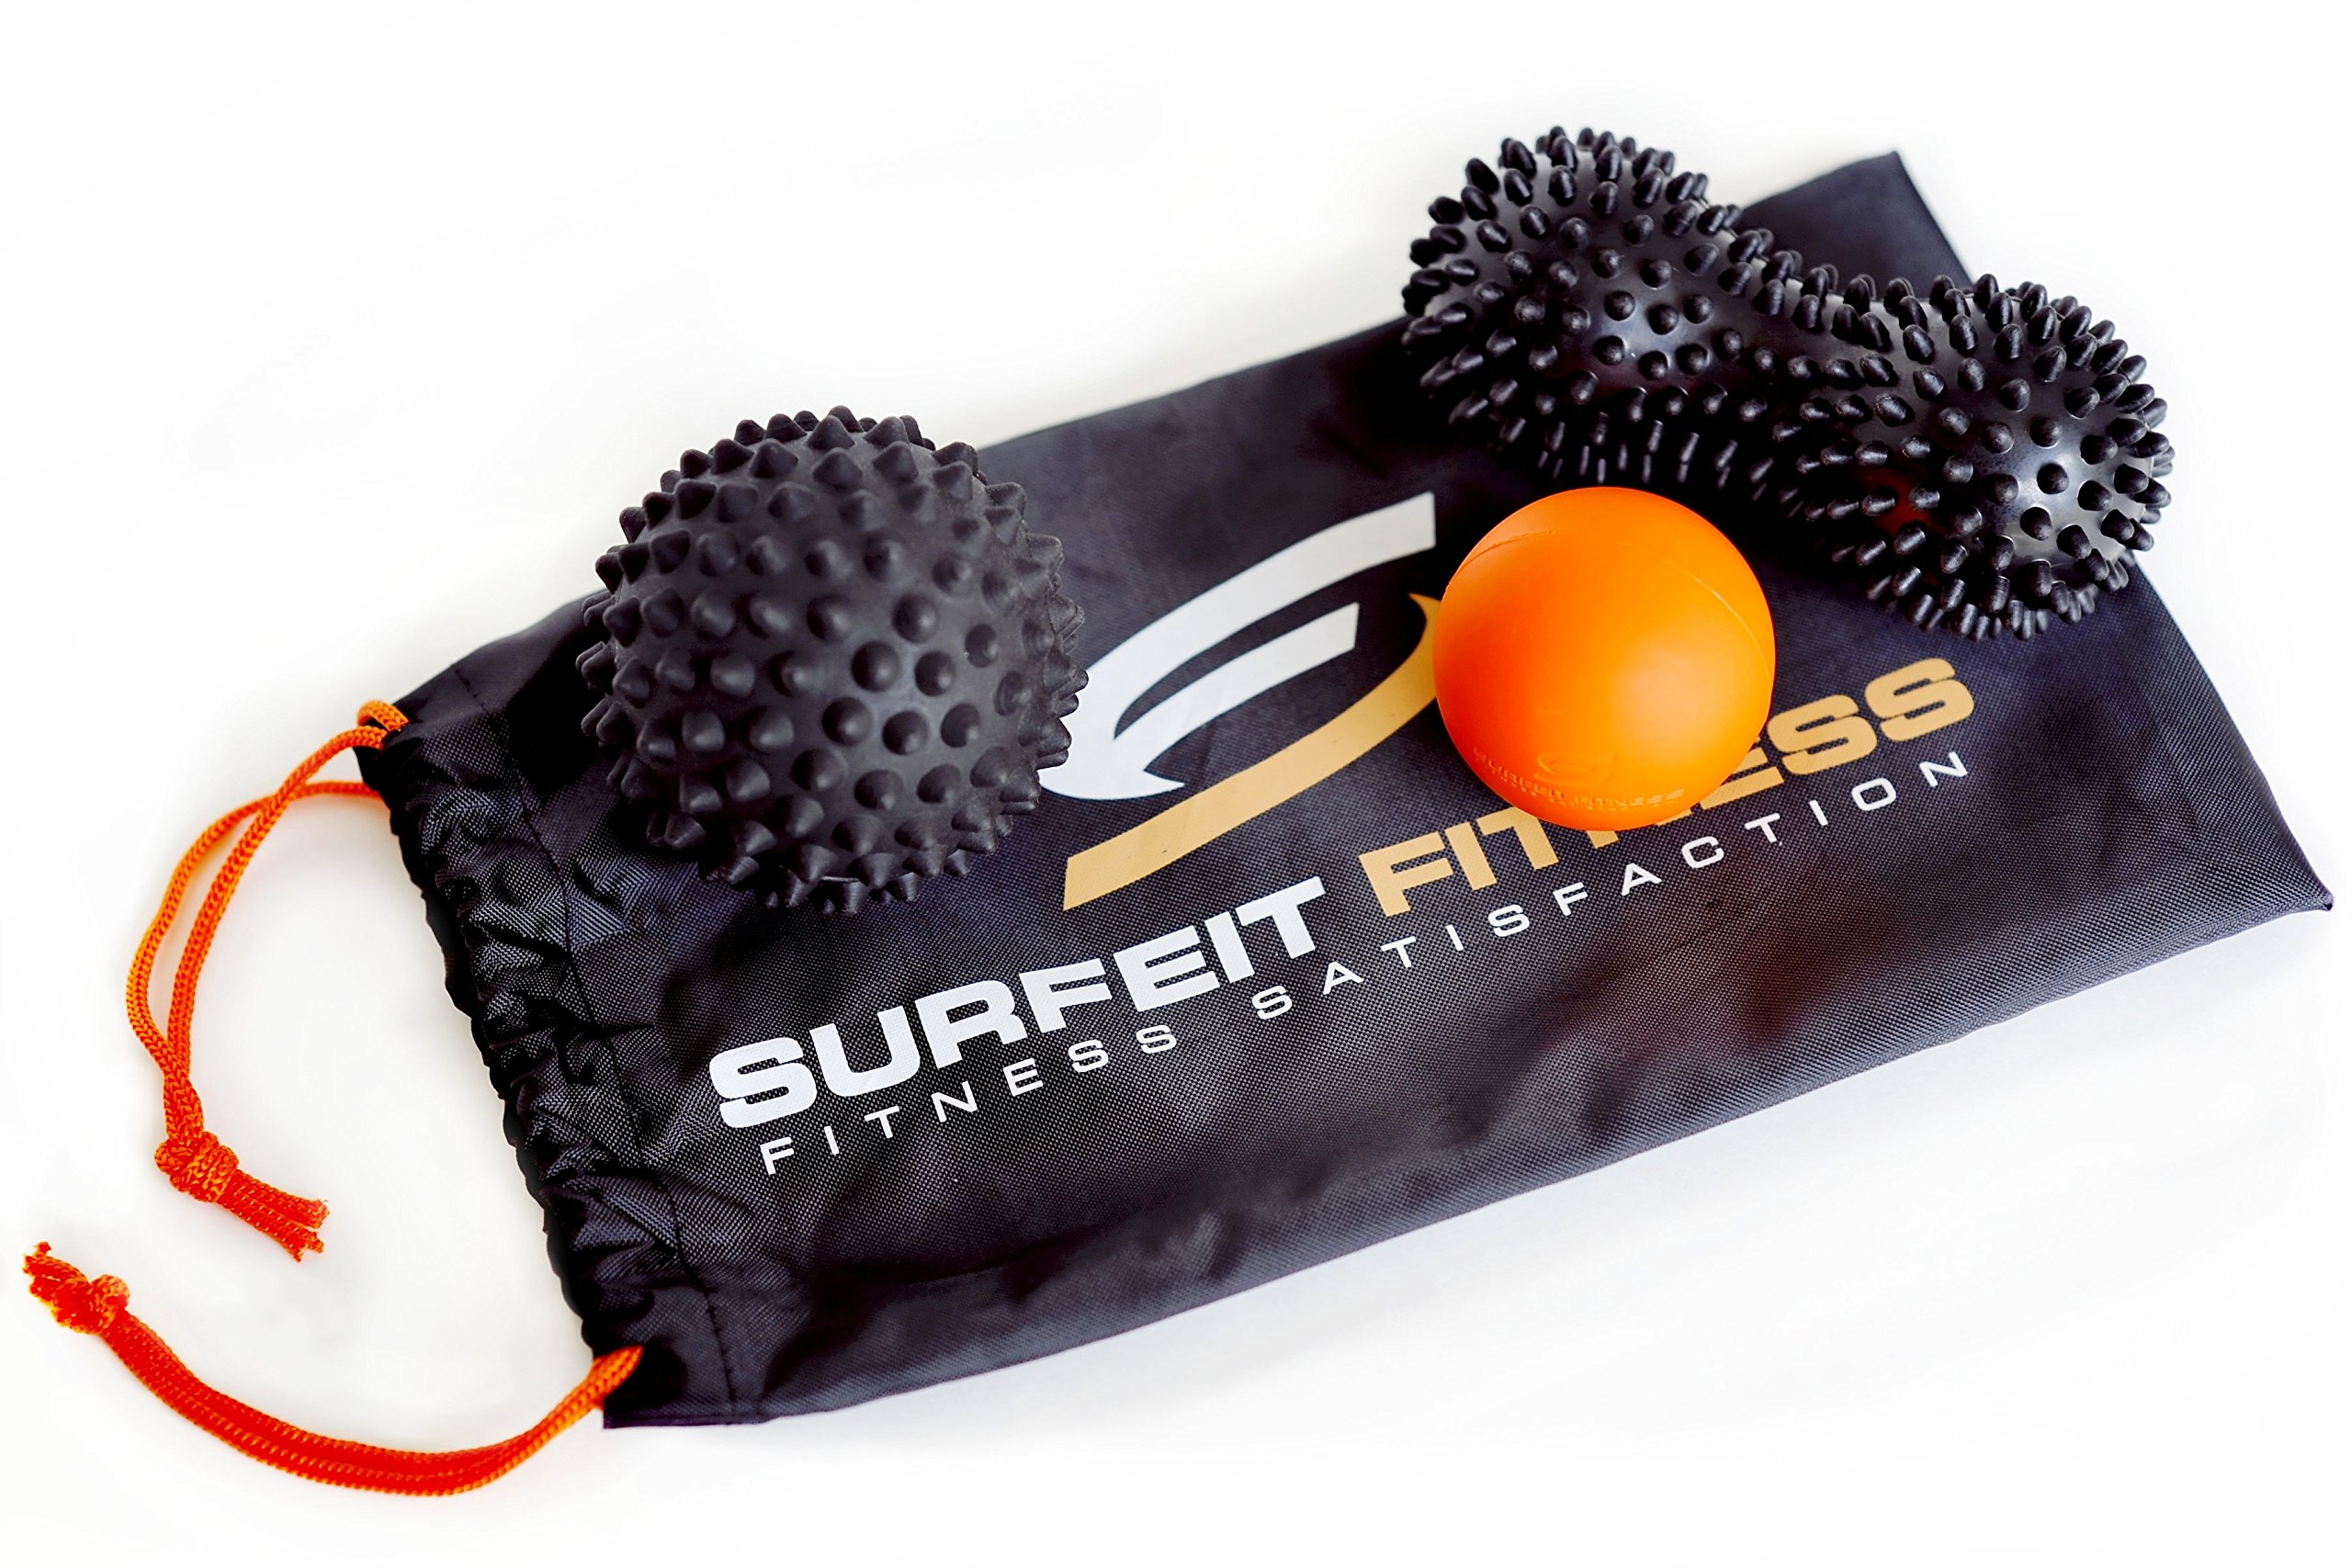 Surfeit Fitness Massage Balls, Set of 3 Massage Balls, Yoga balls for Trigger Point and Myofascial Release- Soft, Medium, Hard - Specifically Designed for Cross Training, Mobility, Warm Up, Recovery